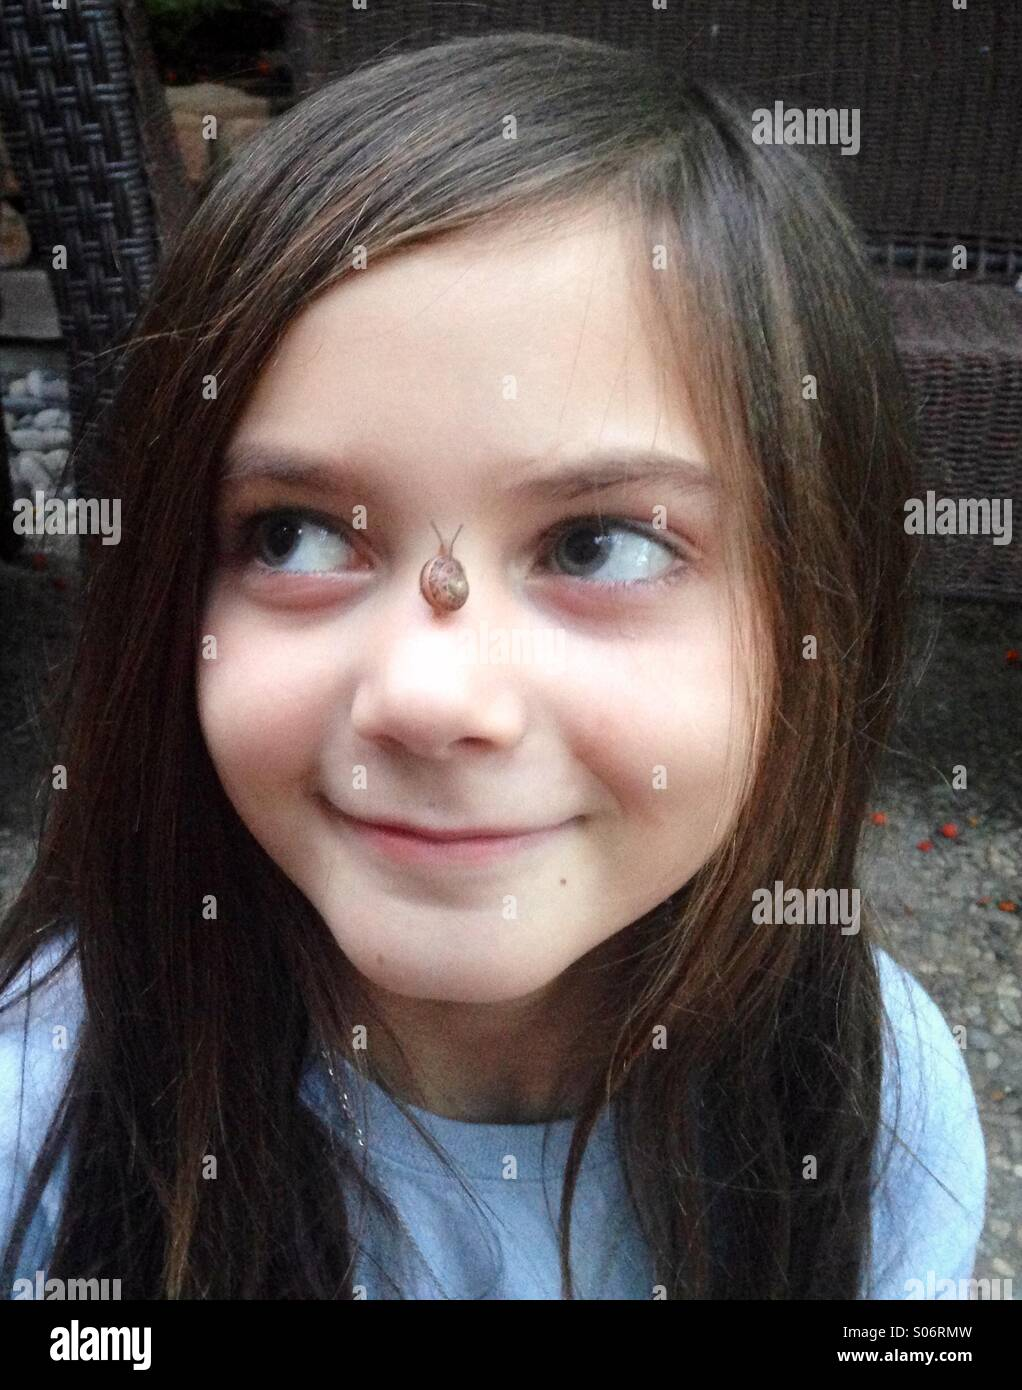 A young adorable girl smiles with a small snail on her nose. - Stock Image